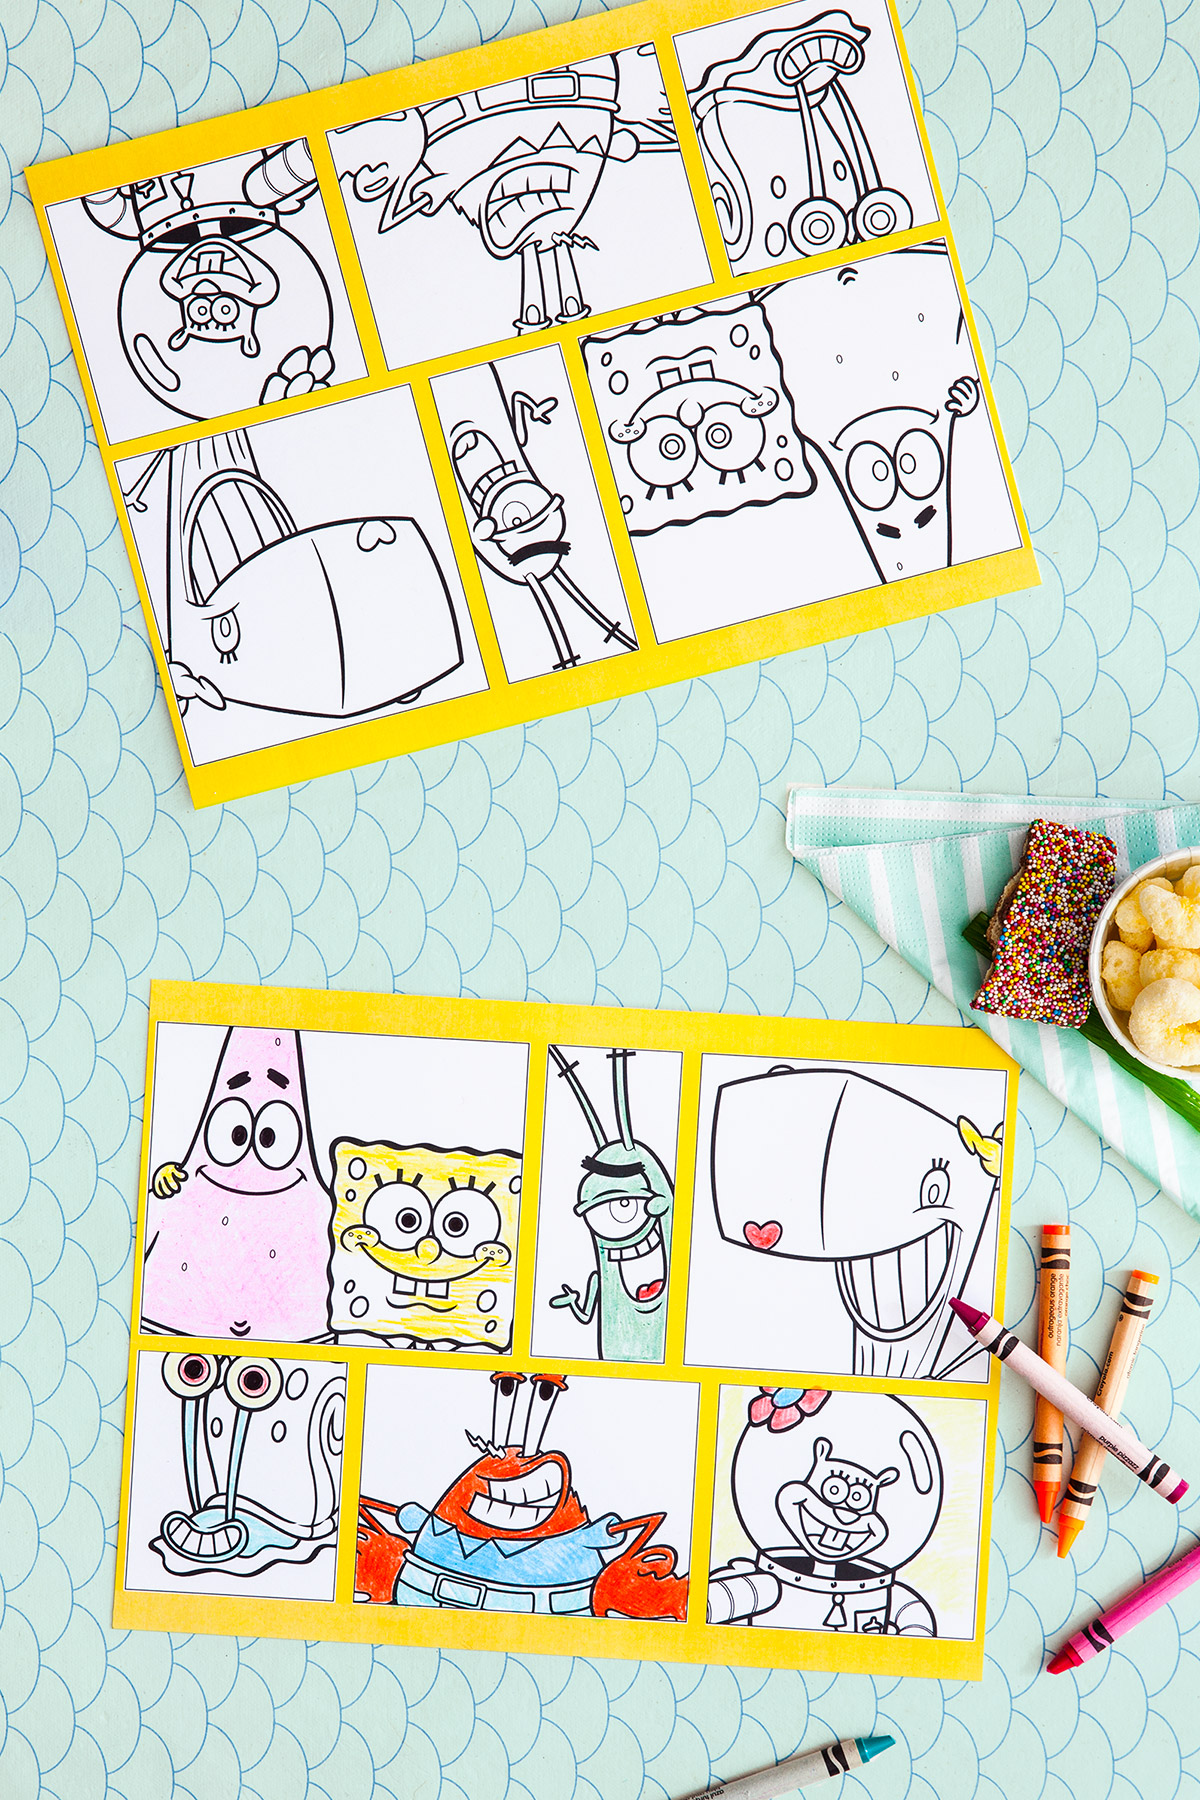 picture relating to Spongebob Printable titled SpongeBob Printable Get together Placemats Nickelodeon Moms and dads